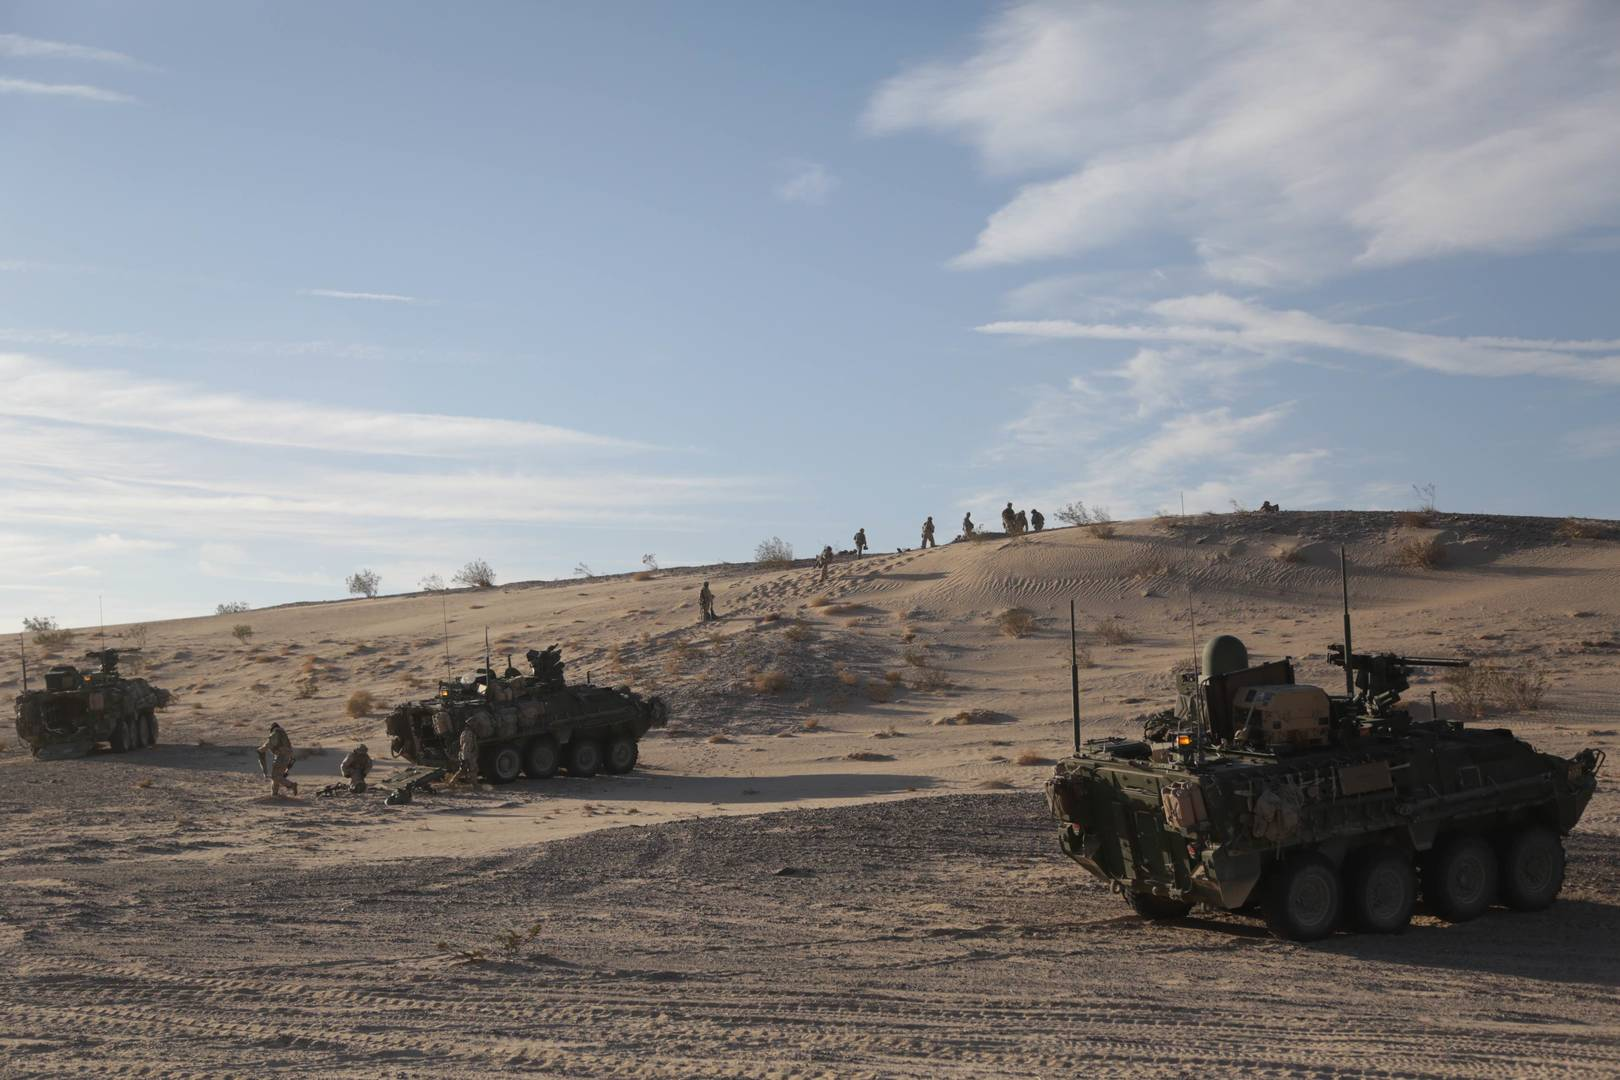 WIN-T Increment 2 Strykers with Soldiers From 1st Armored Division